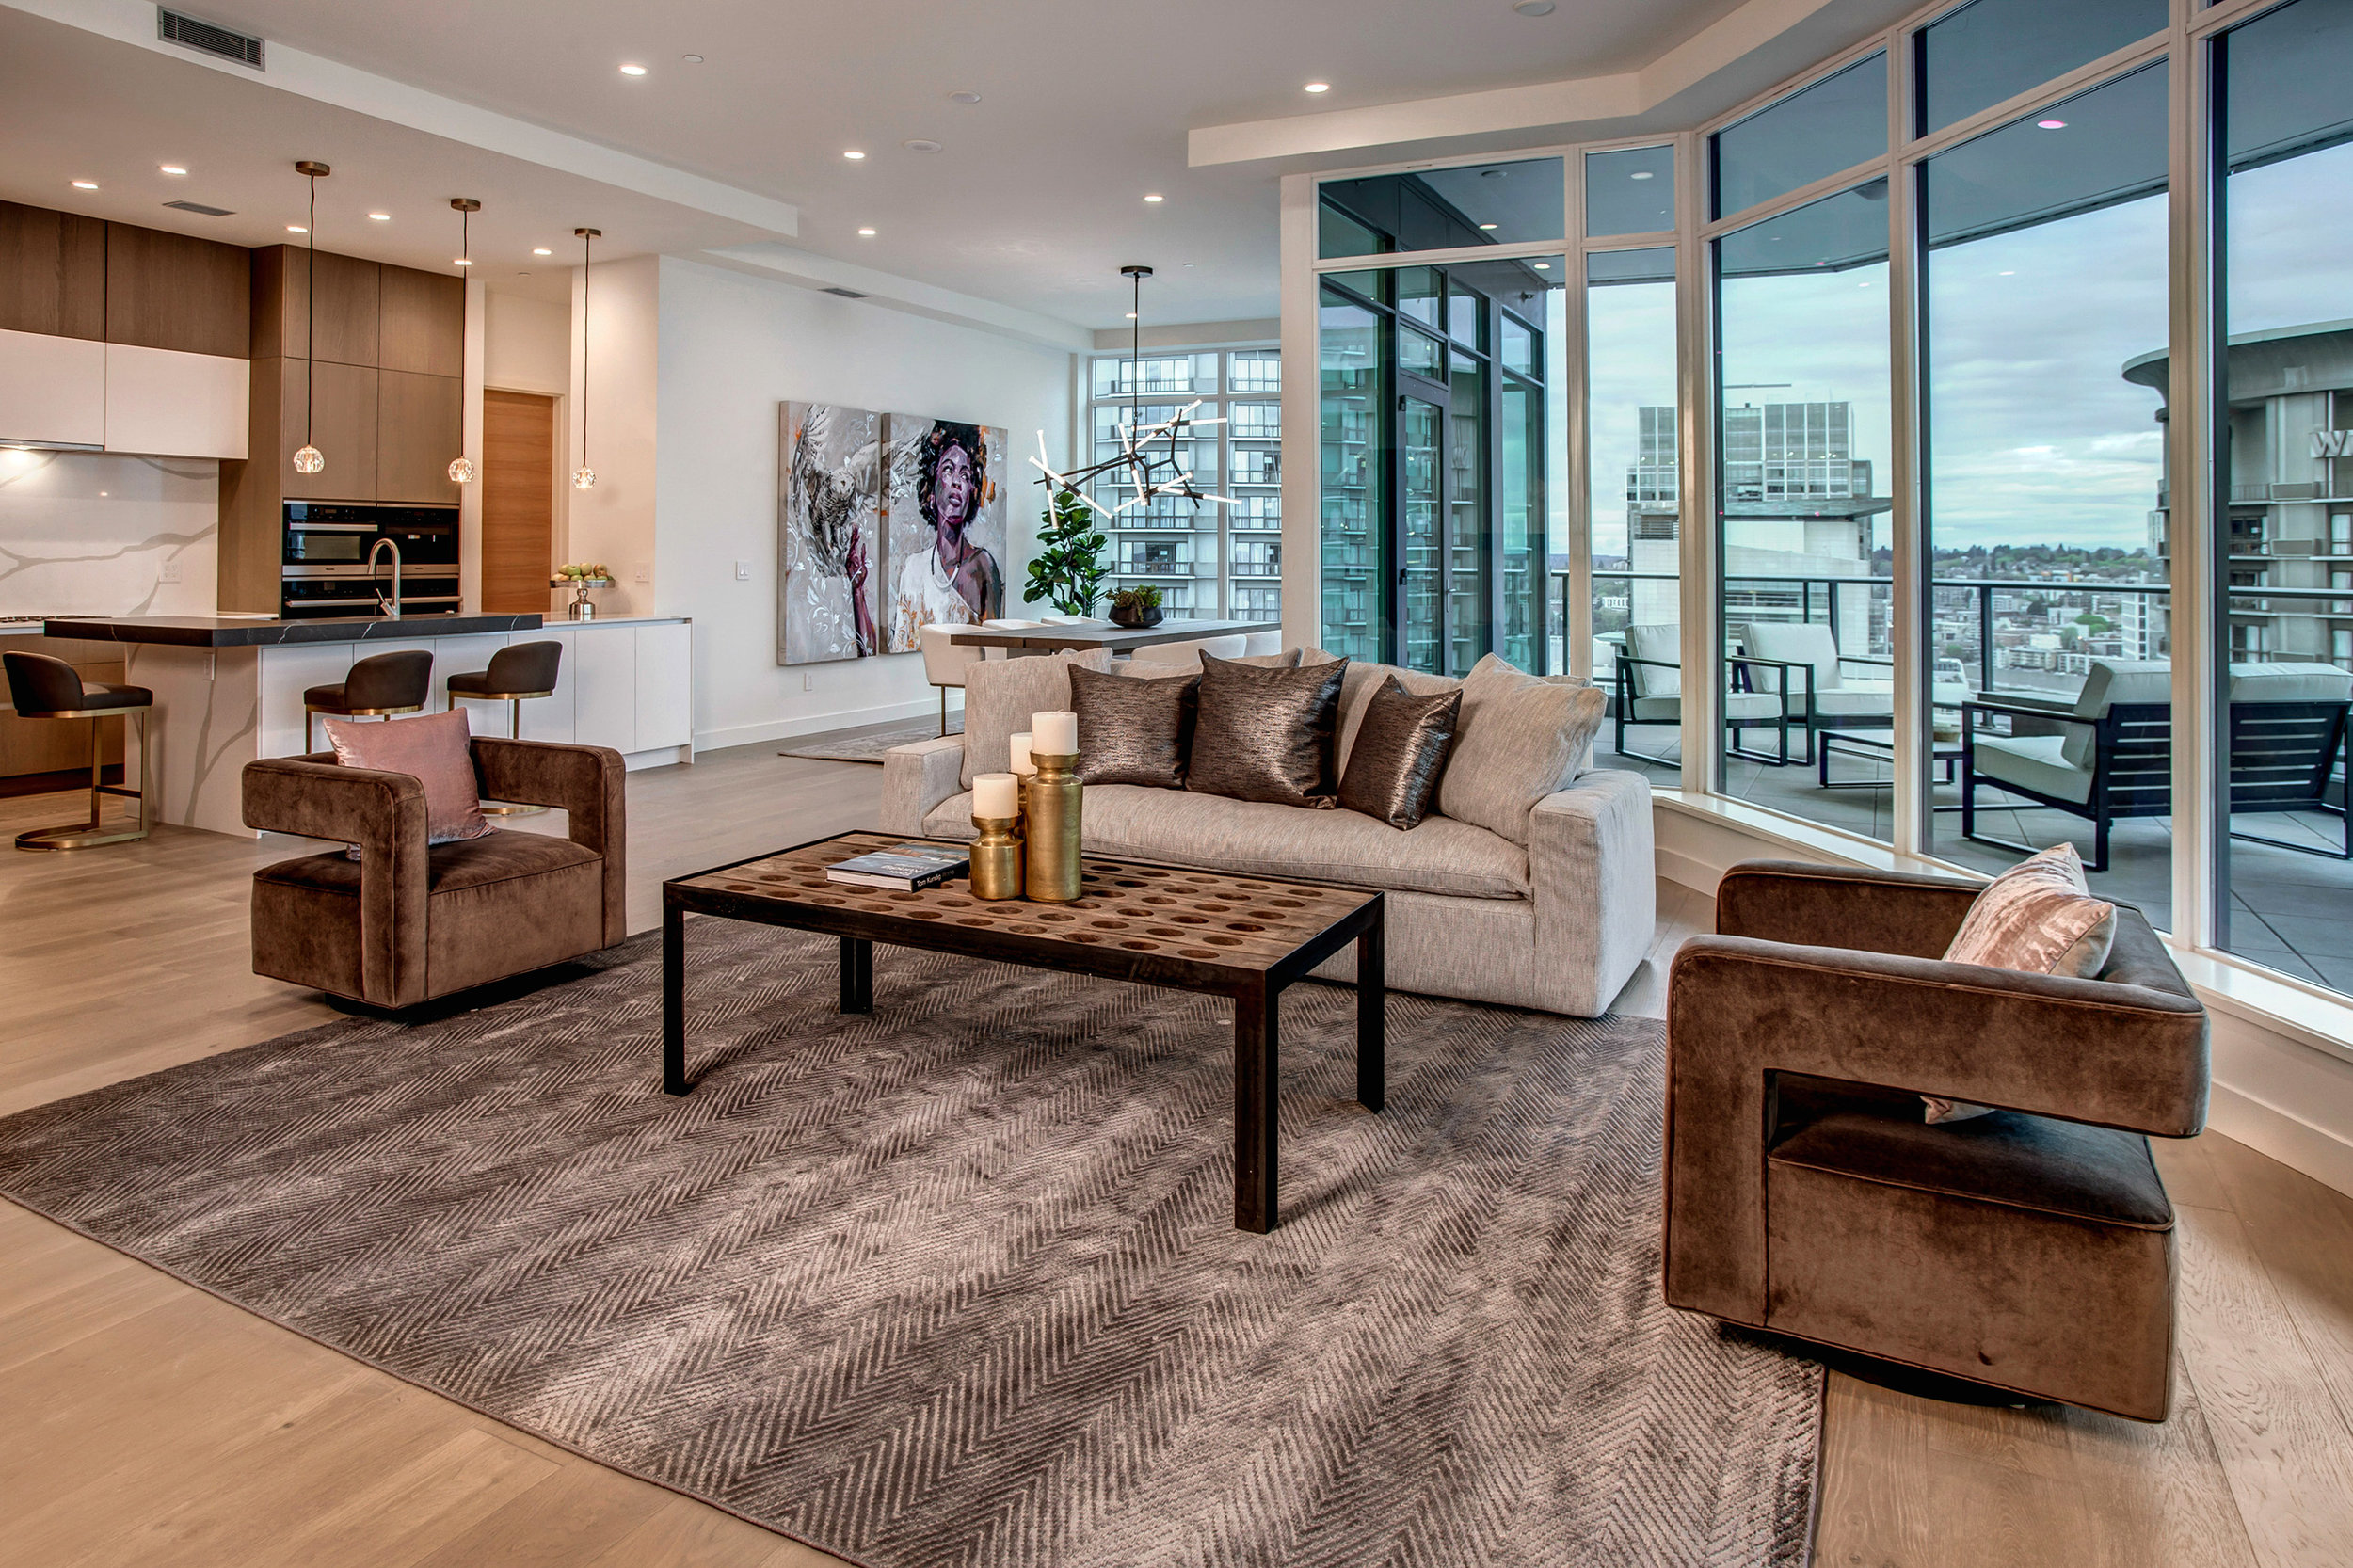 Great room with open floor plan leads to a massive entertaining balcony.